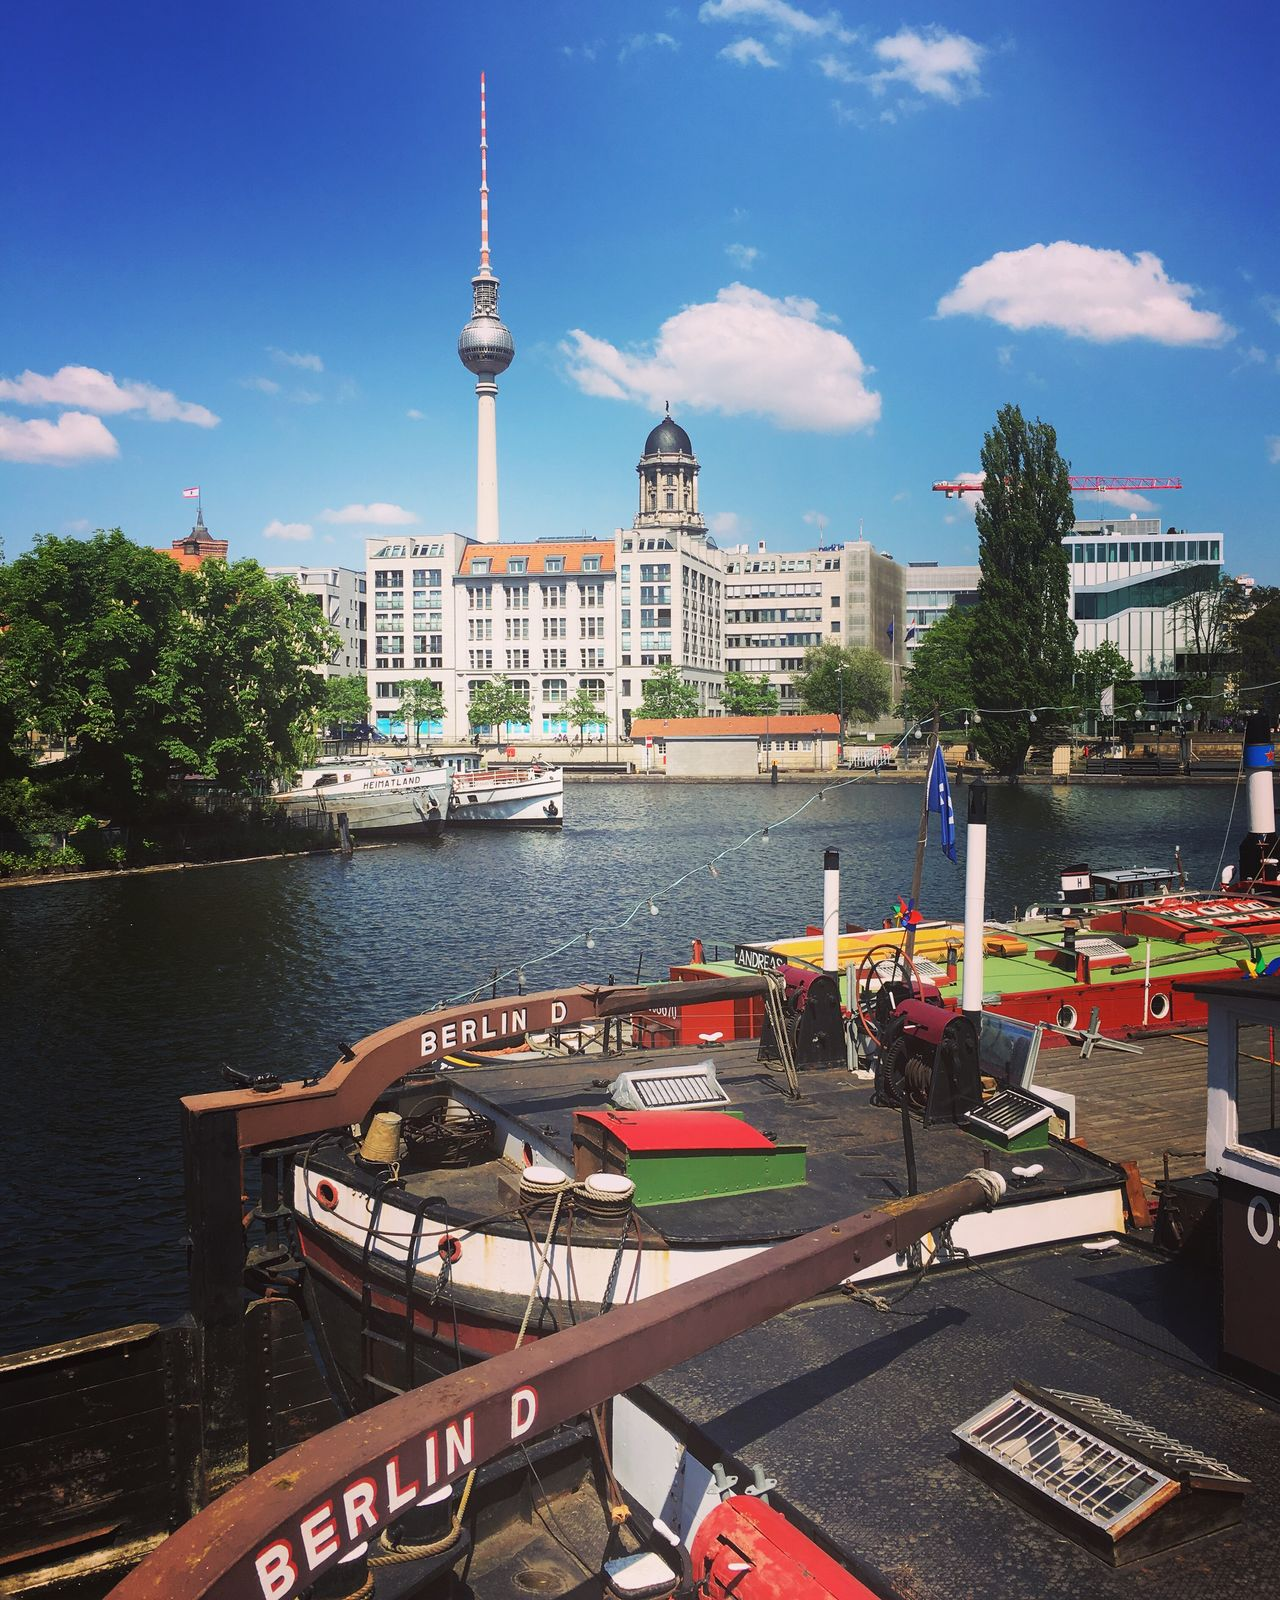 Berliner Ansichten Wonderful Berlin Lovely Weather Lovely Day Walking Around Harbour Cityscapes